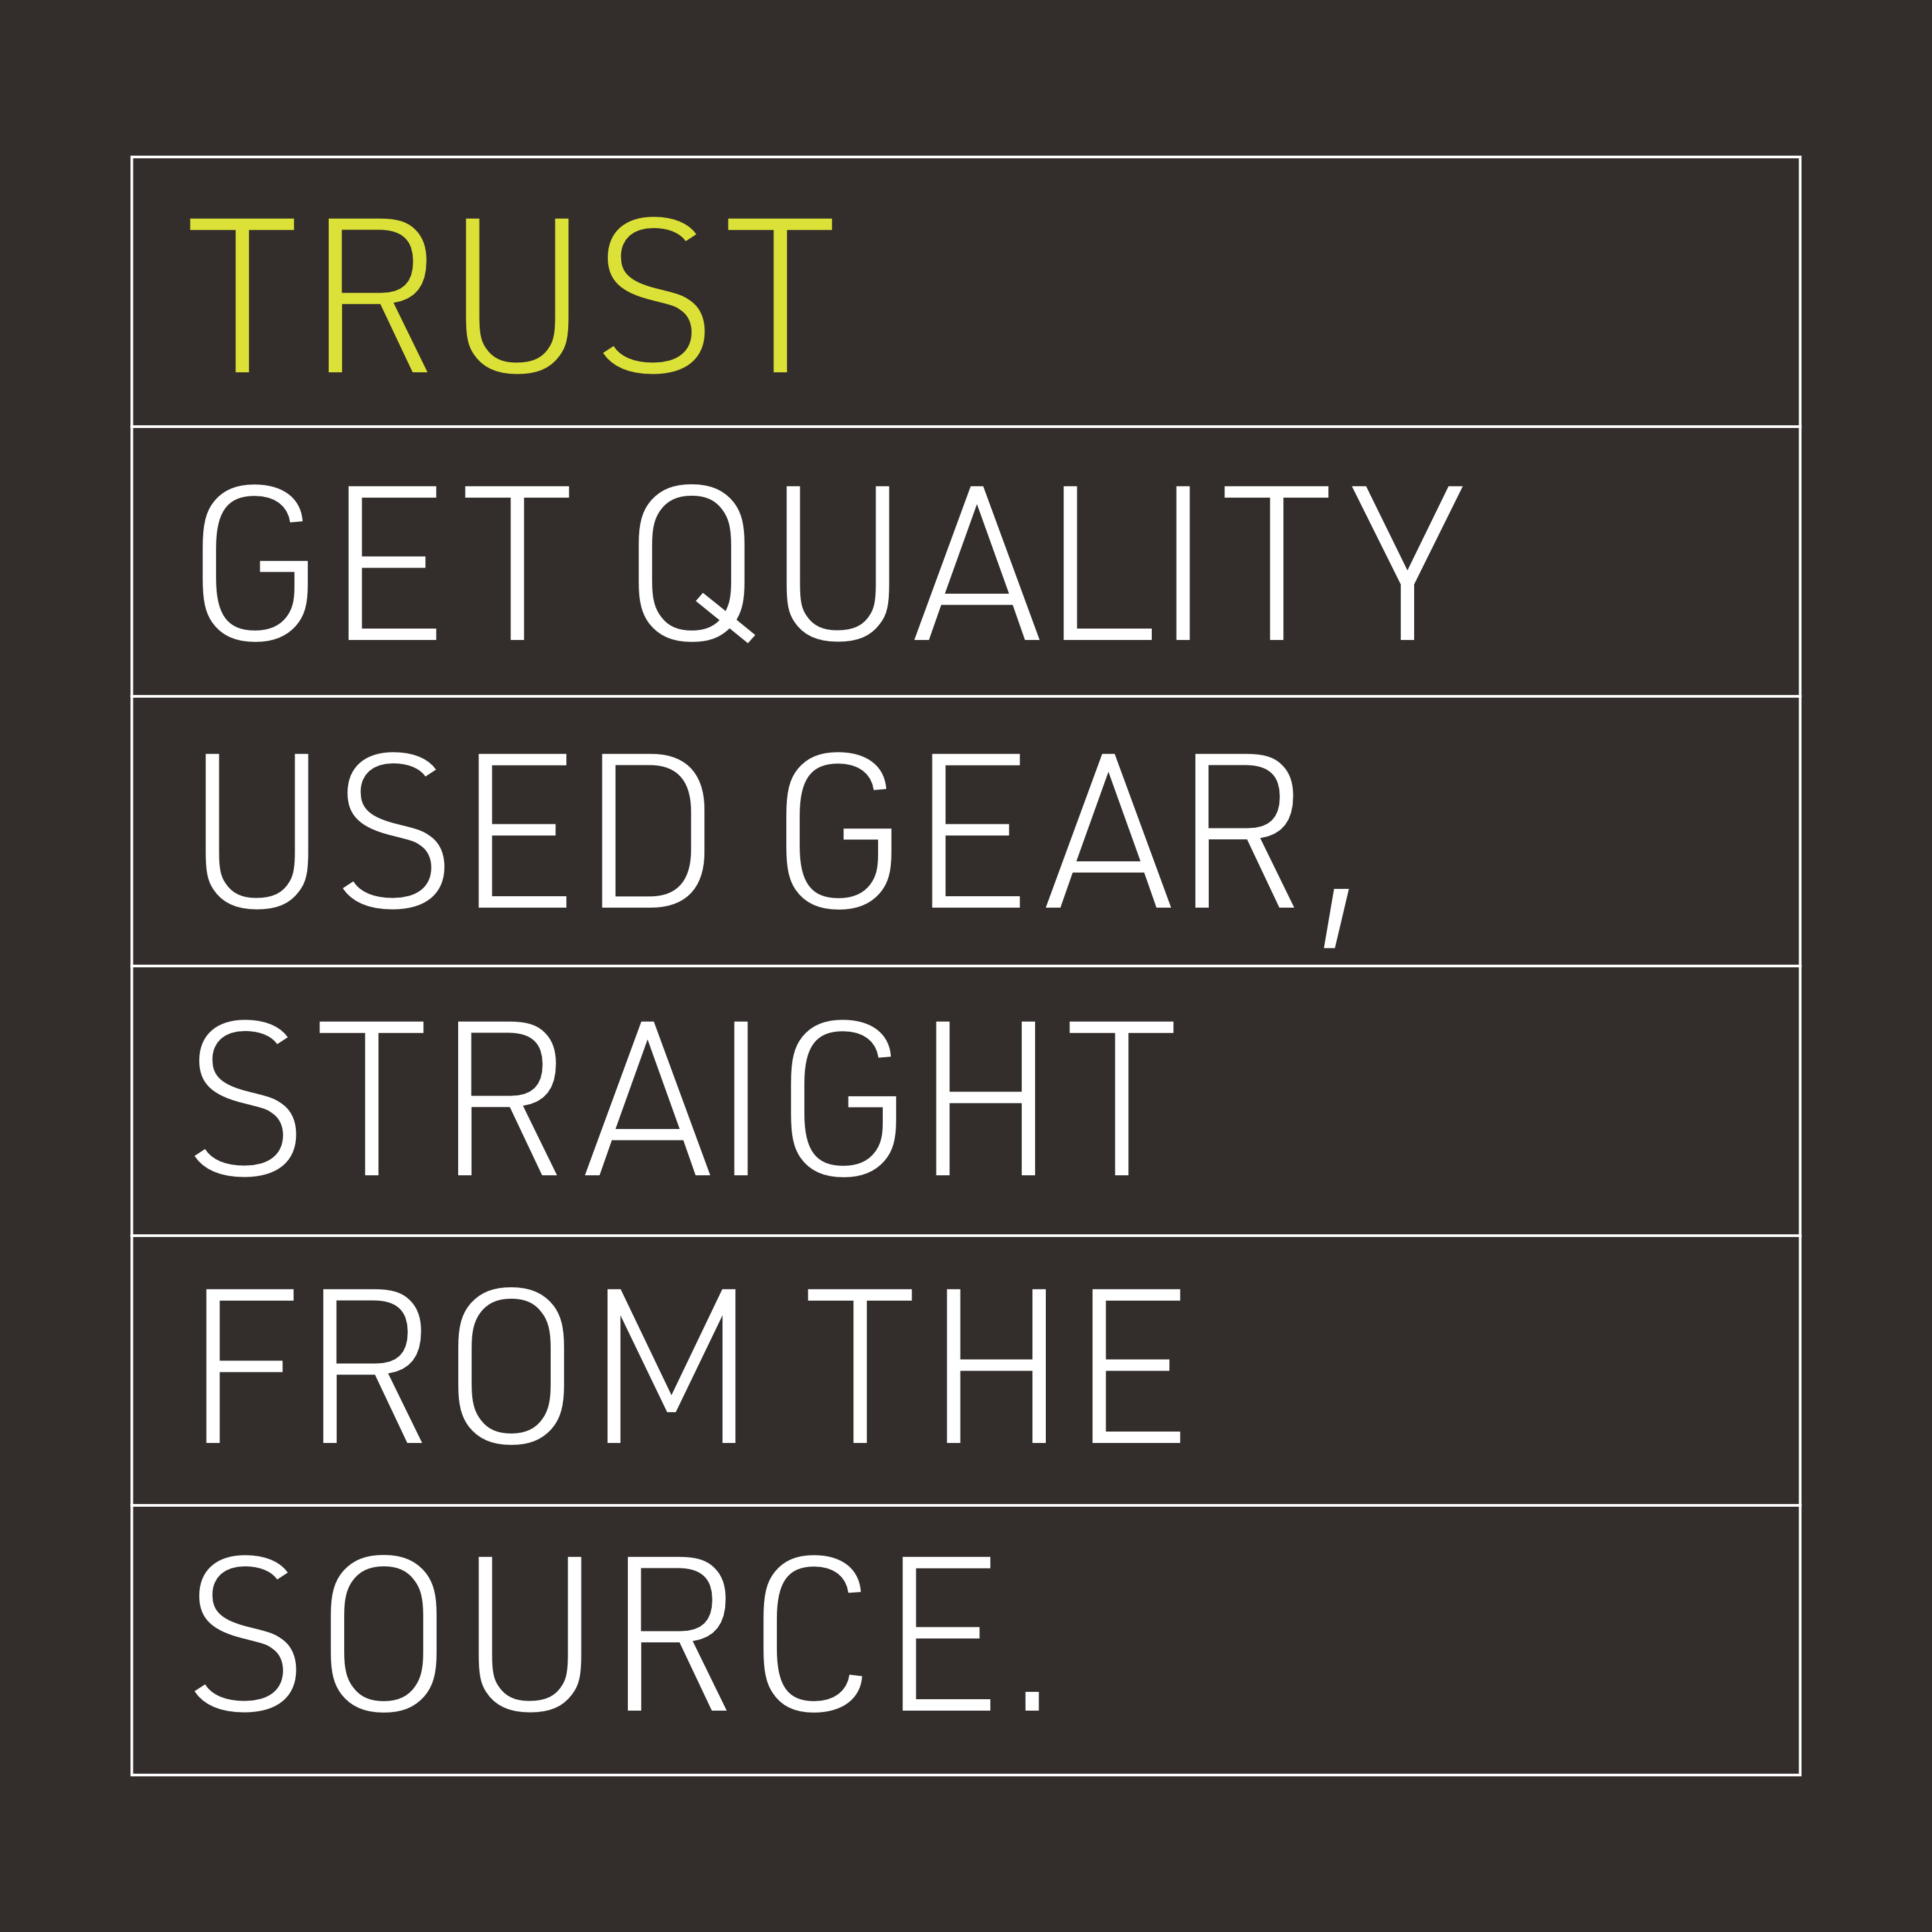 Trust: Get quality used gear, straight from the source